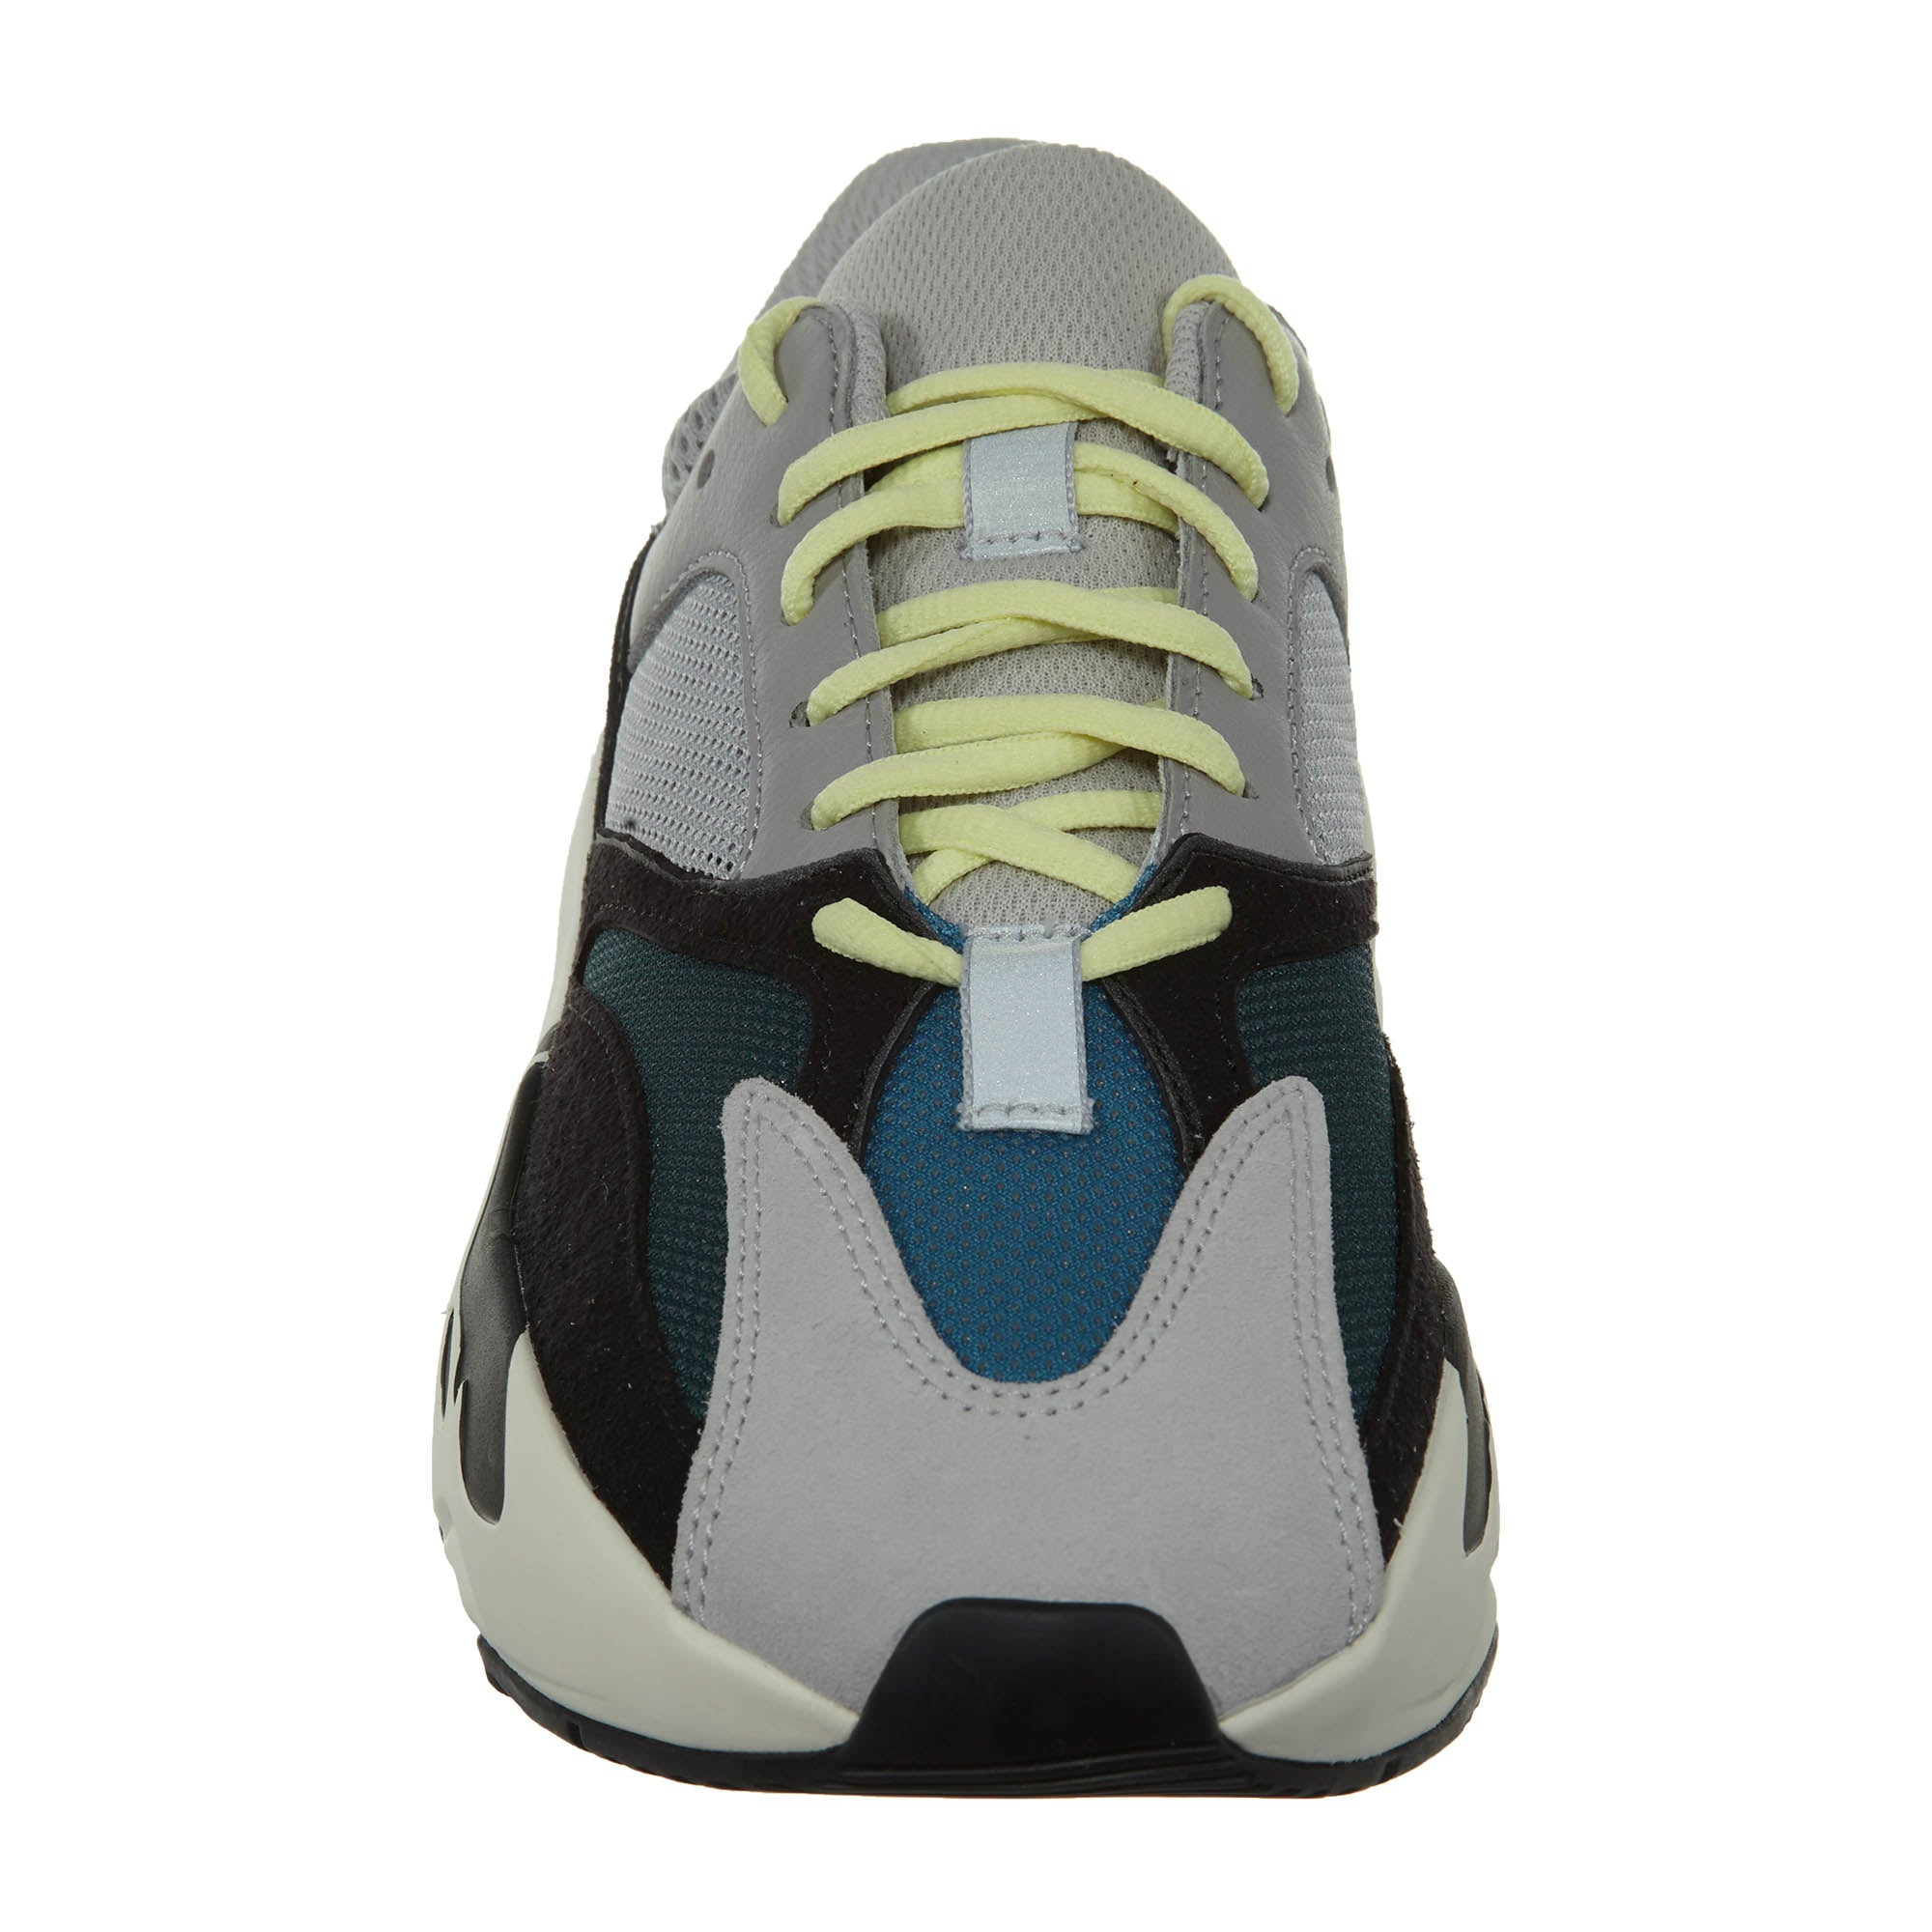 18688f8fa15e8 Adidas Yeezy Wave Runner 700 Solid Grey. ADIDAS   Athletic Shoes   Sneakers